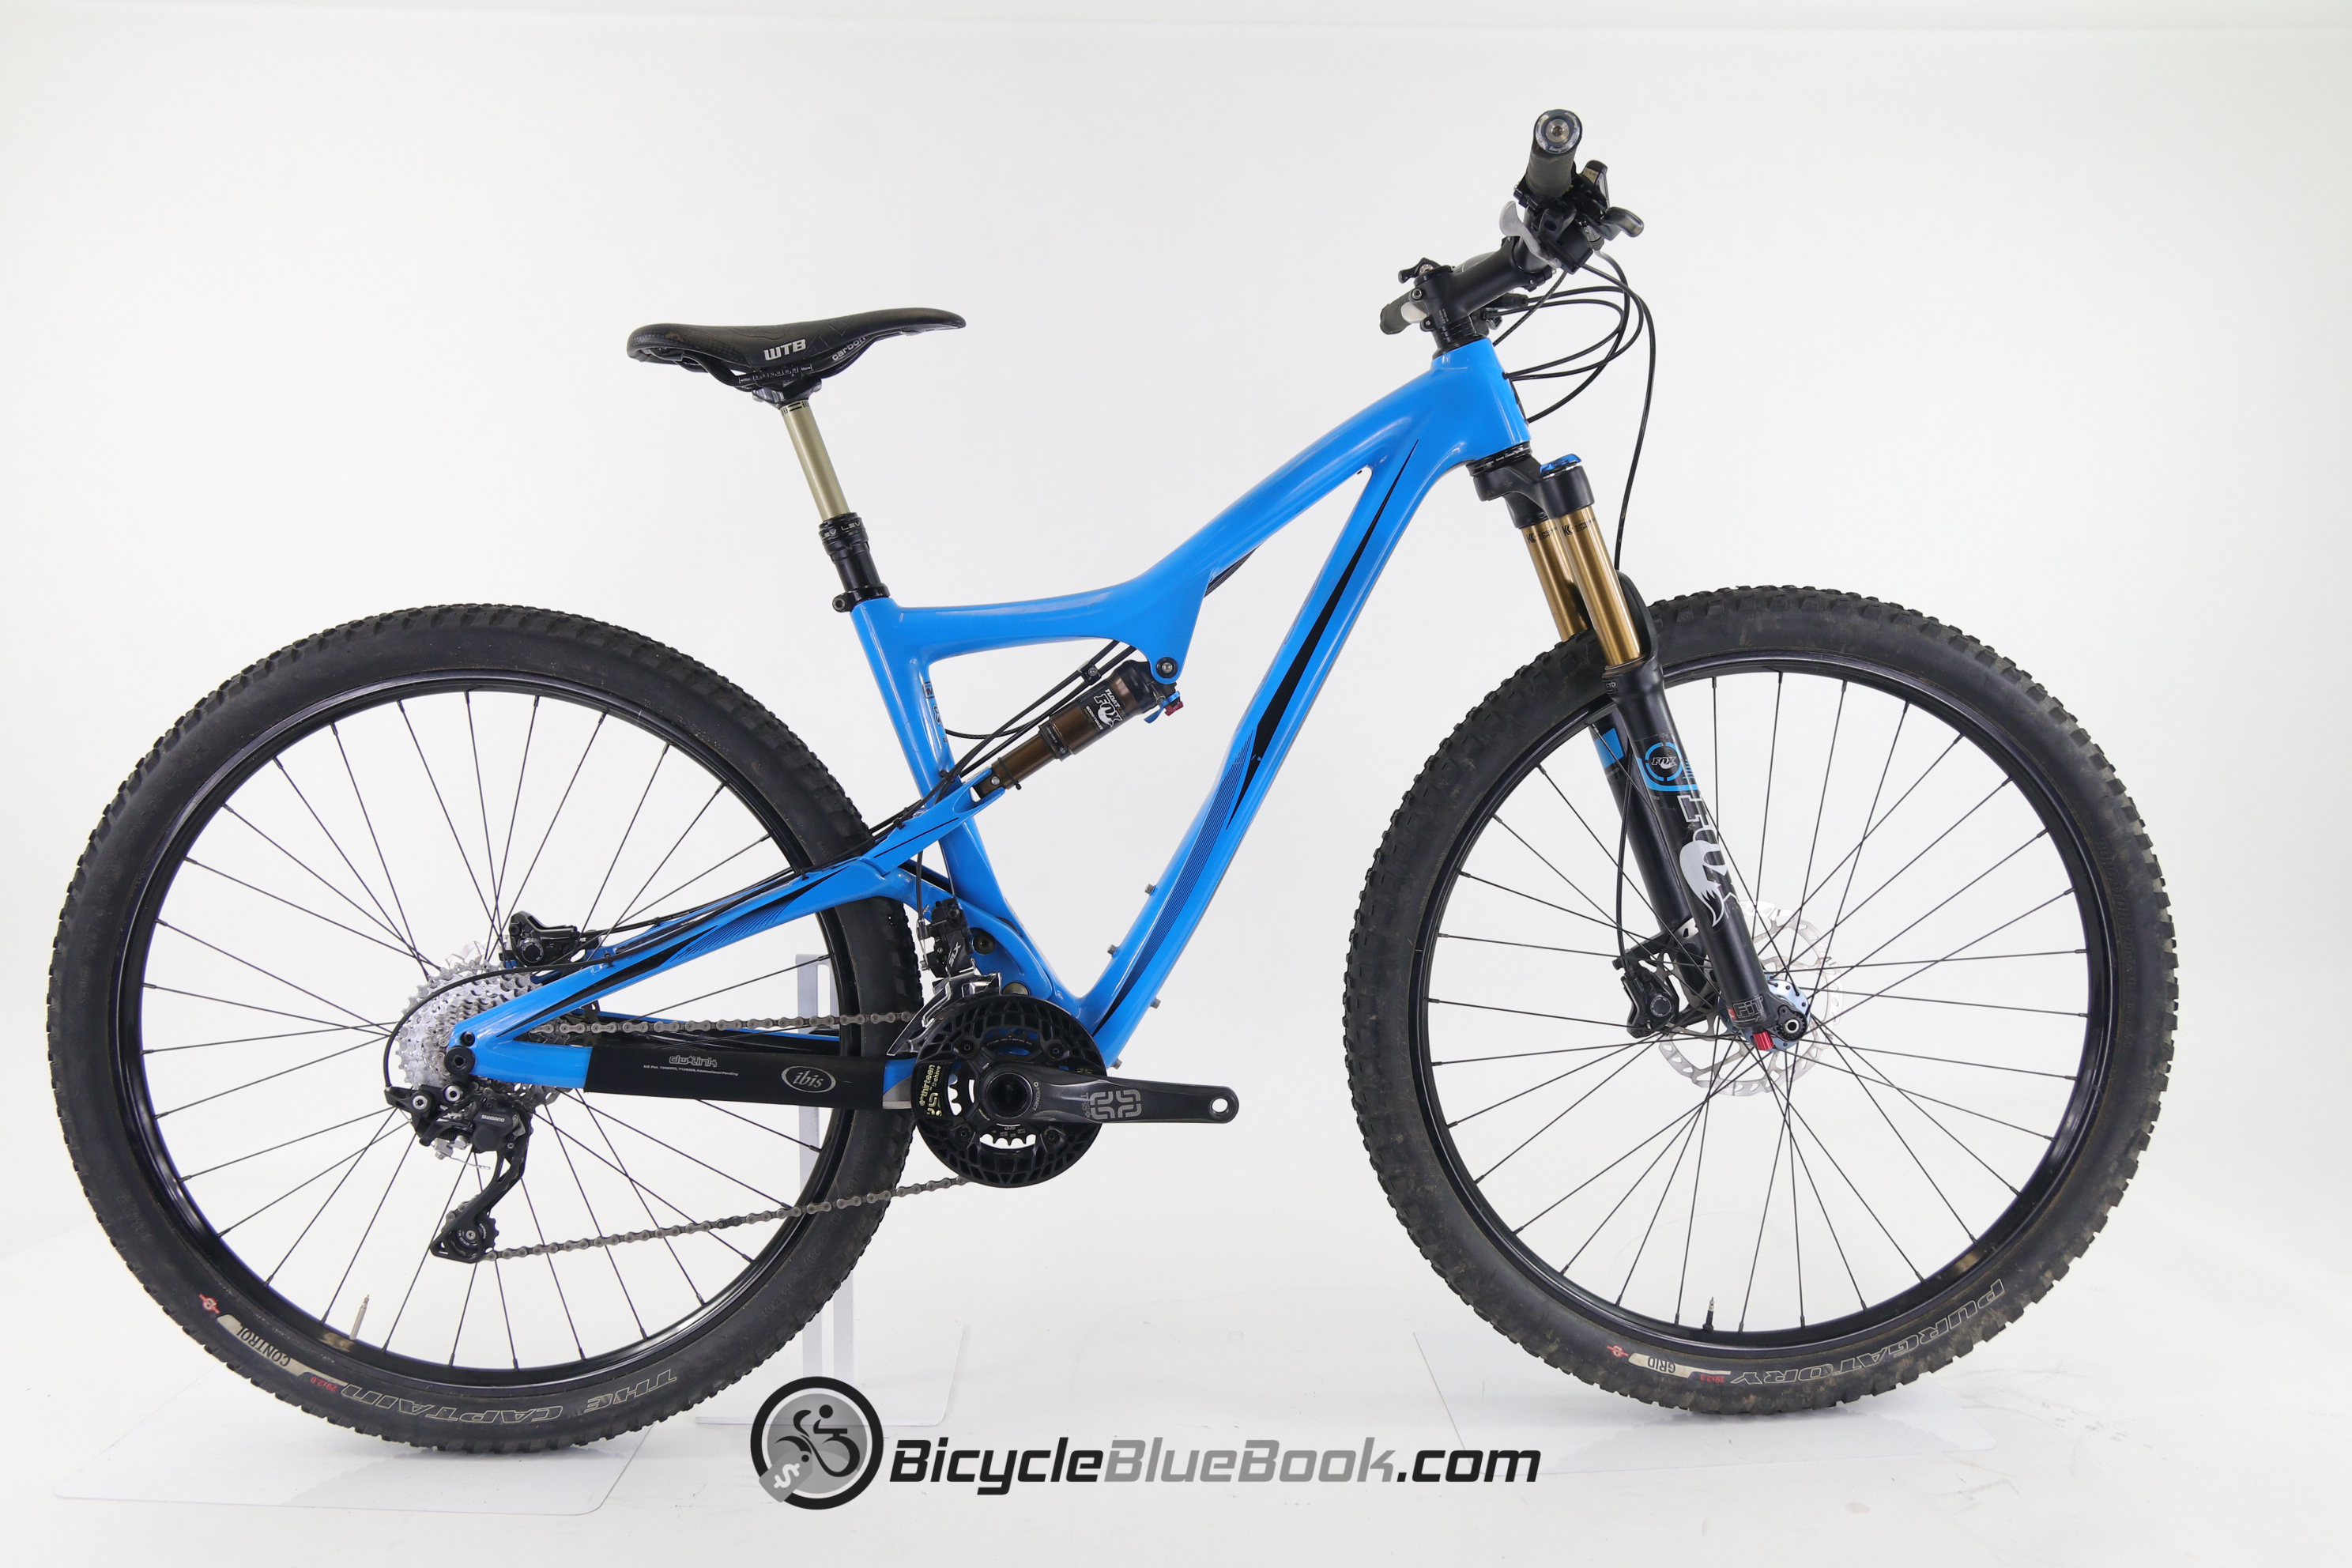 Ibis Ripley 29 For Sale - 2474 - BicycleBlueBook.com